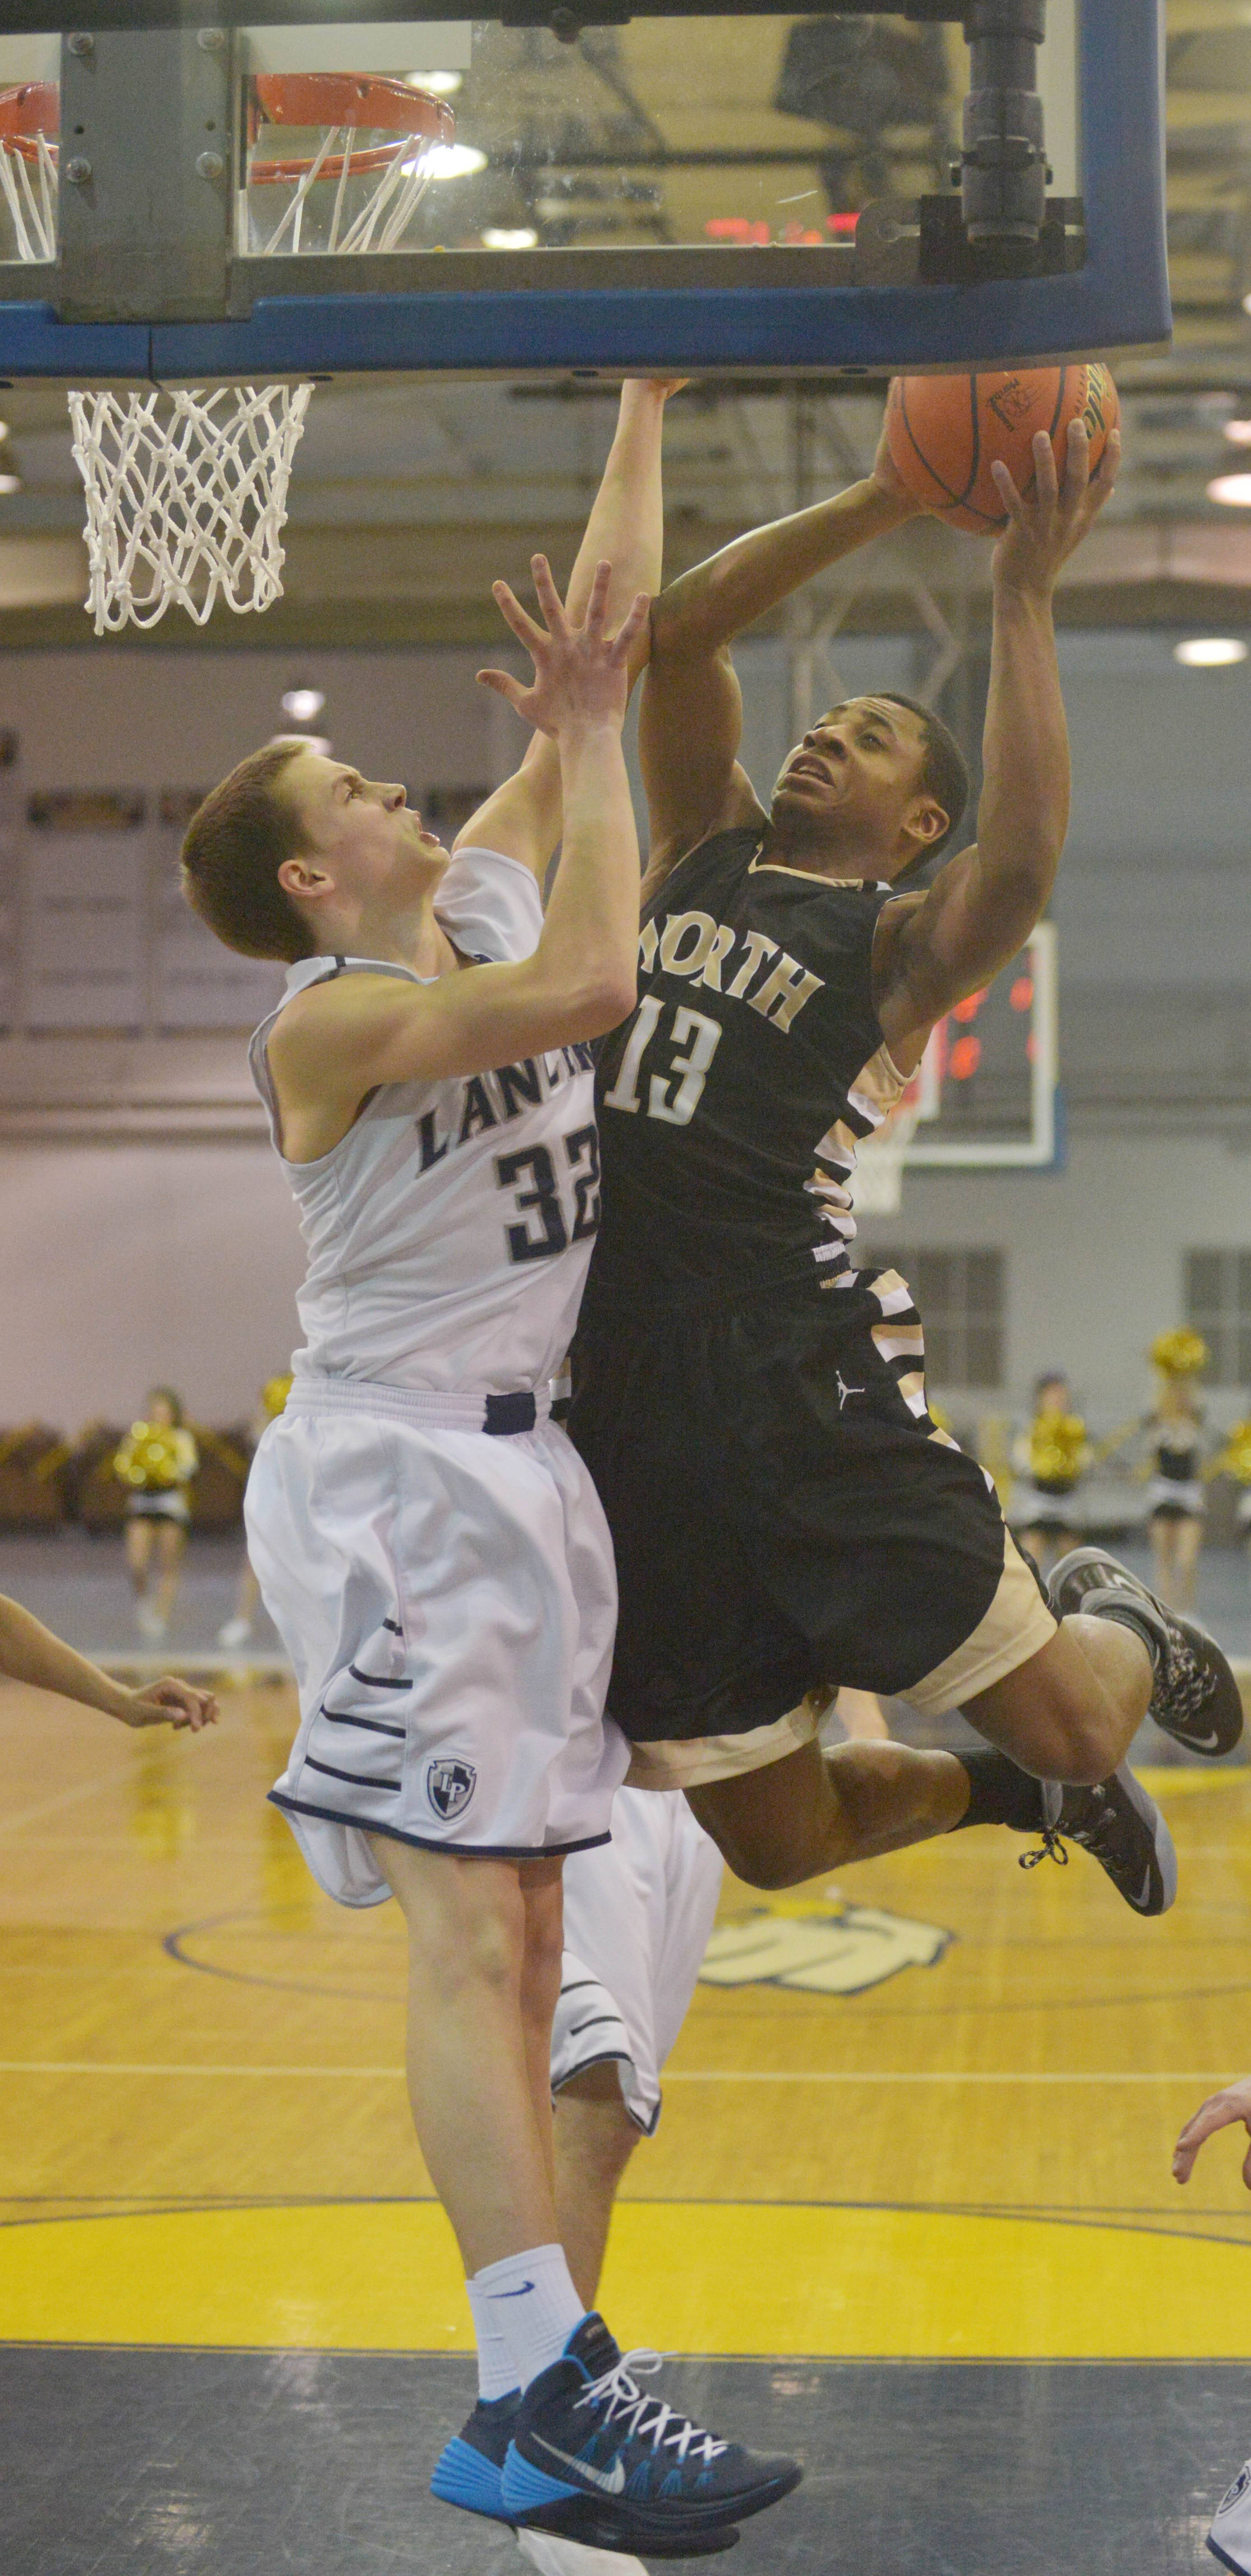 Conner Vance of Lake Park and Justin Jackson of Glenbard North go for the ball.